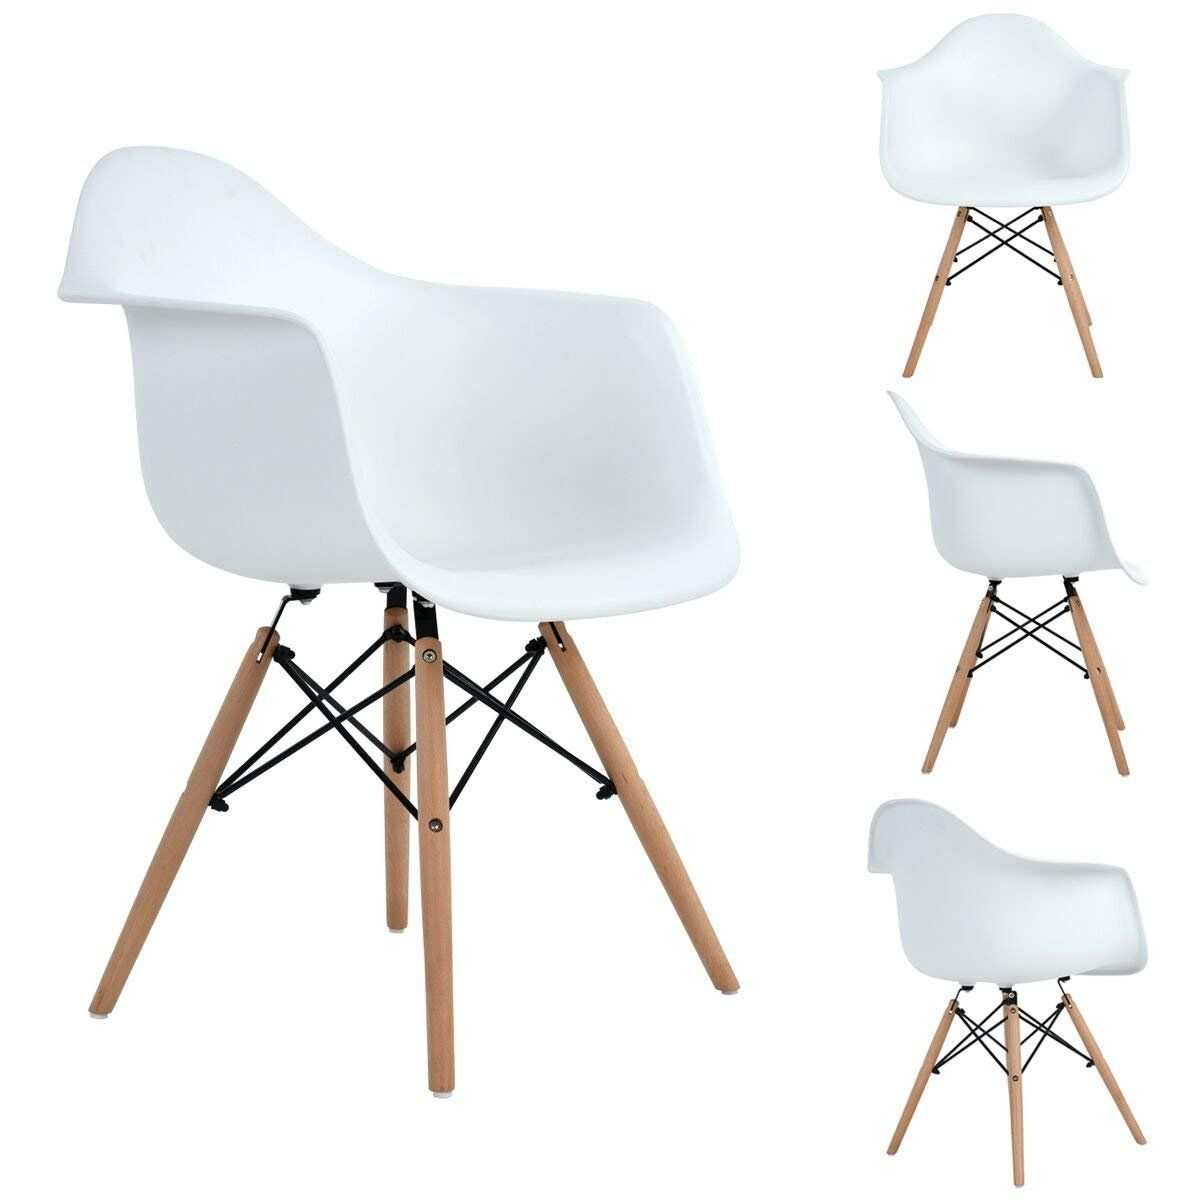 Aingoo Eiffel Style Chairs Kitchen Chairs Set Of 4 Arms Dining